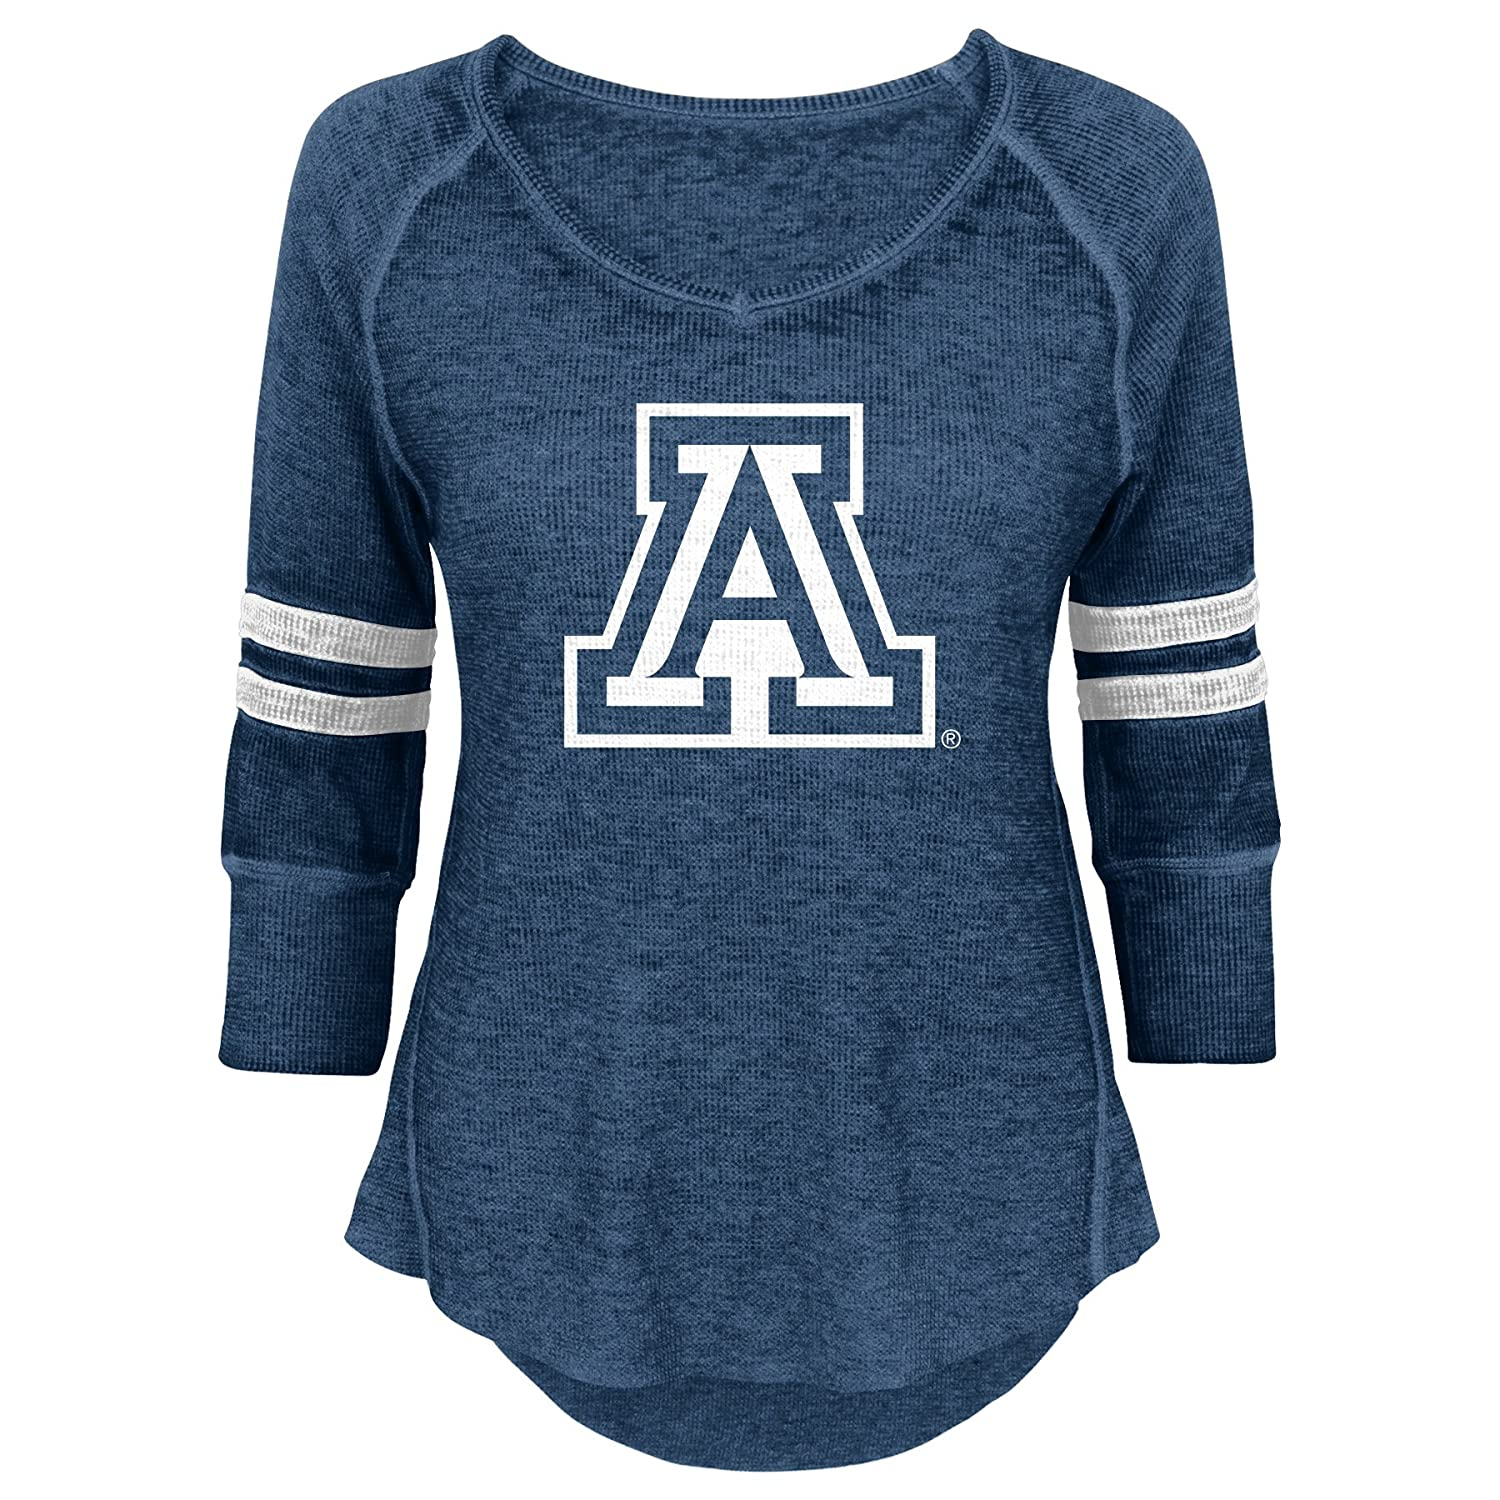 NCAA Arizona Wildcats Juniors Outerstuff Relaxed 3//4 Raglan Thermal Top 15-17 Team Color X-Large